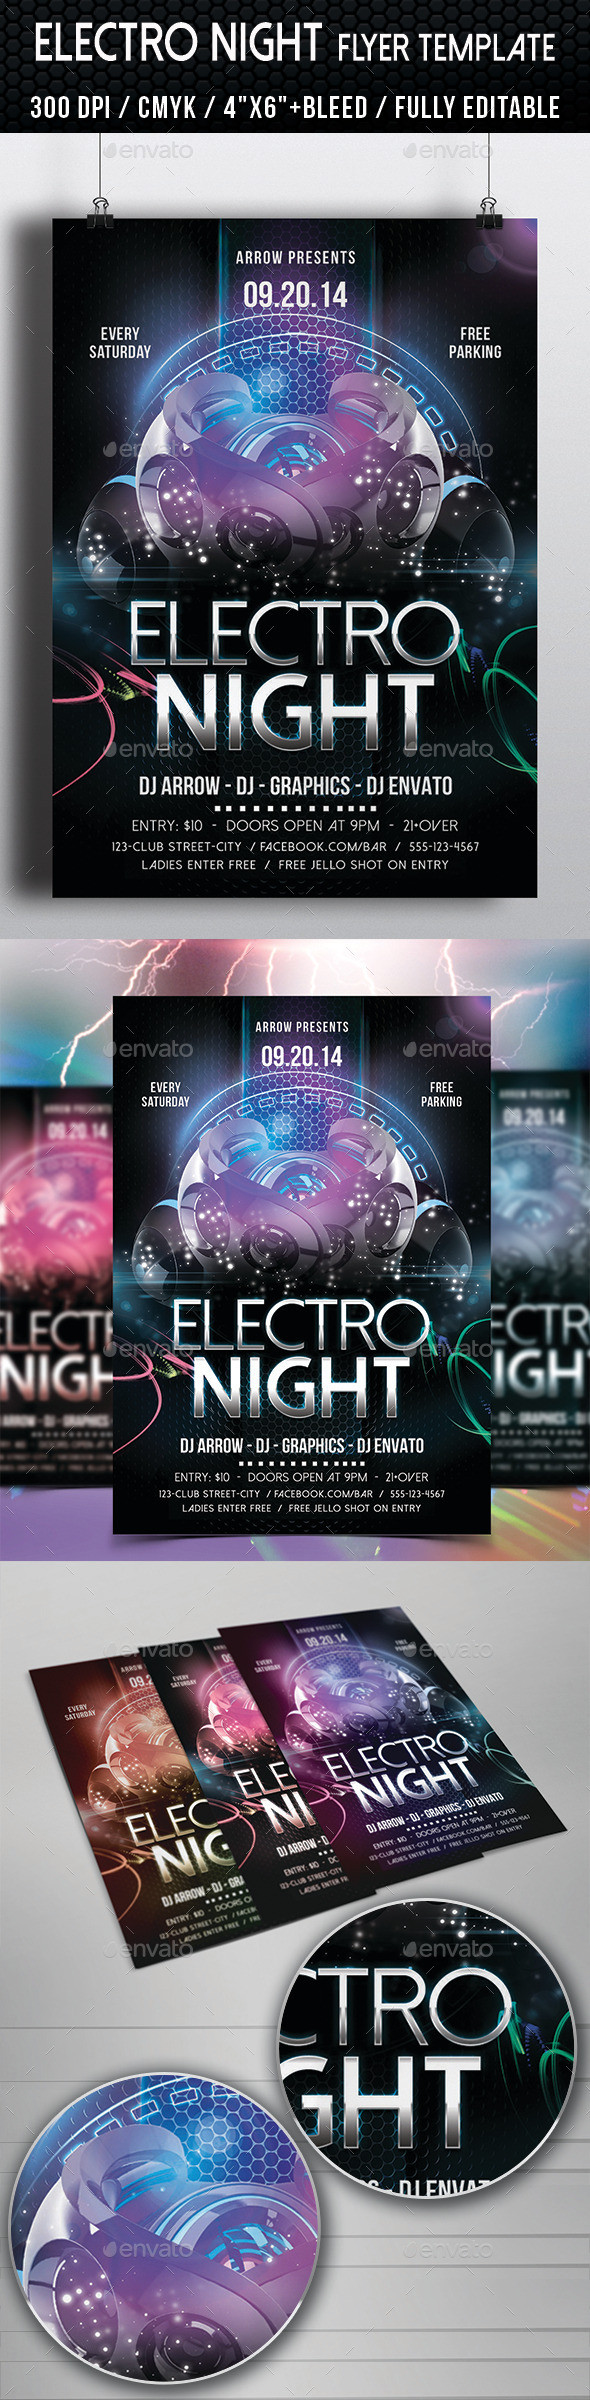 Electro 20night 20flyer 20template 20preview